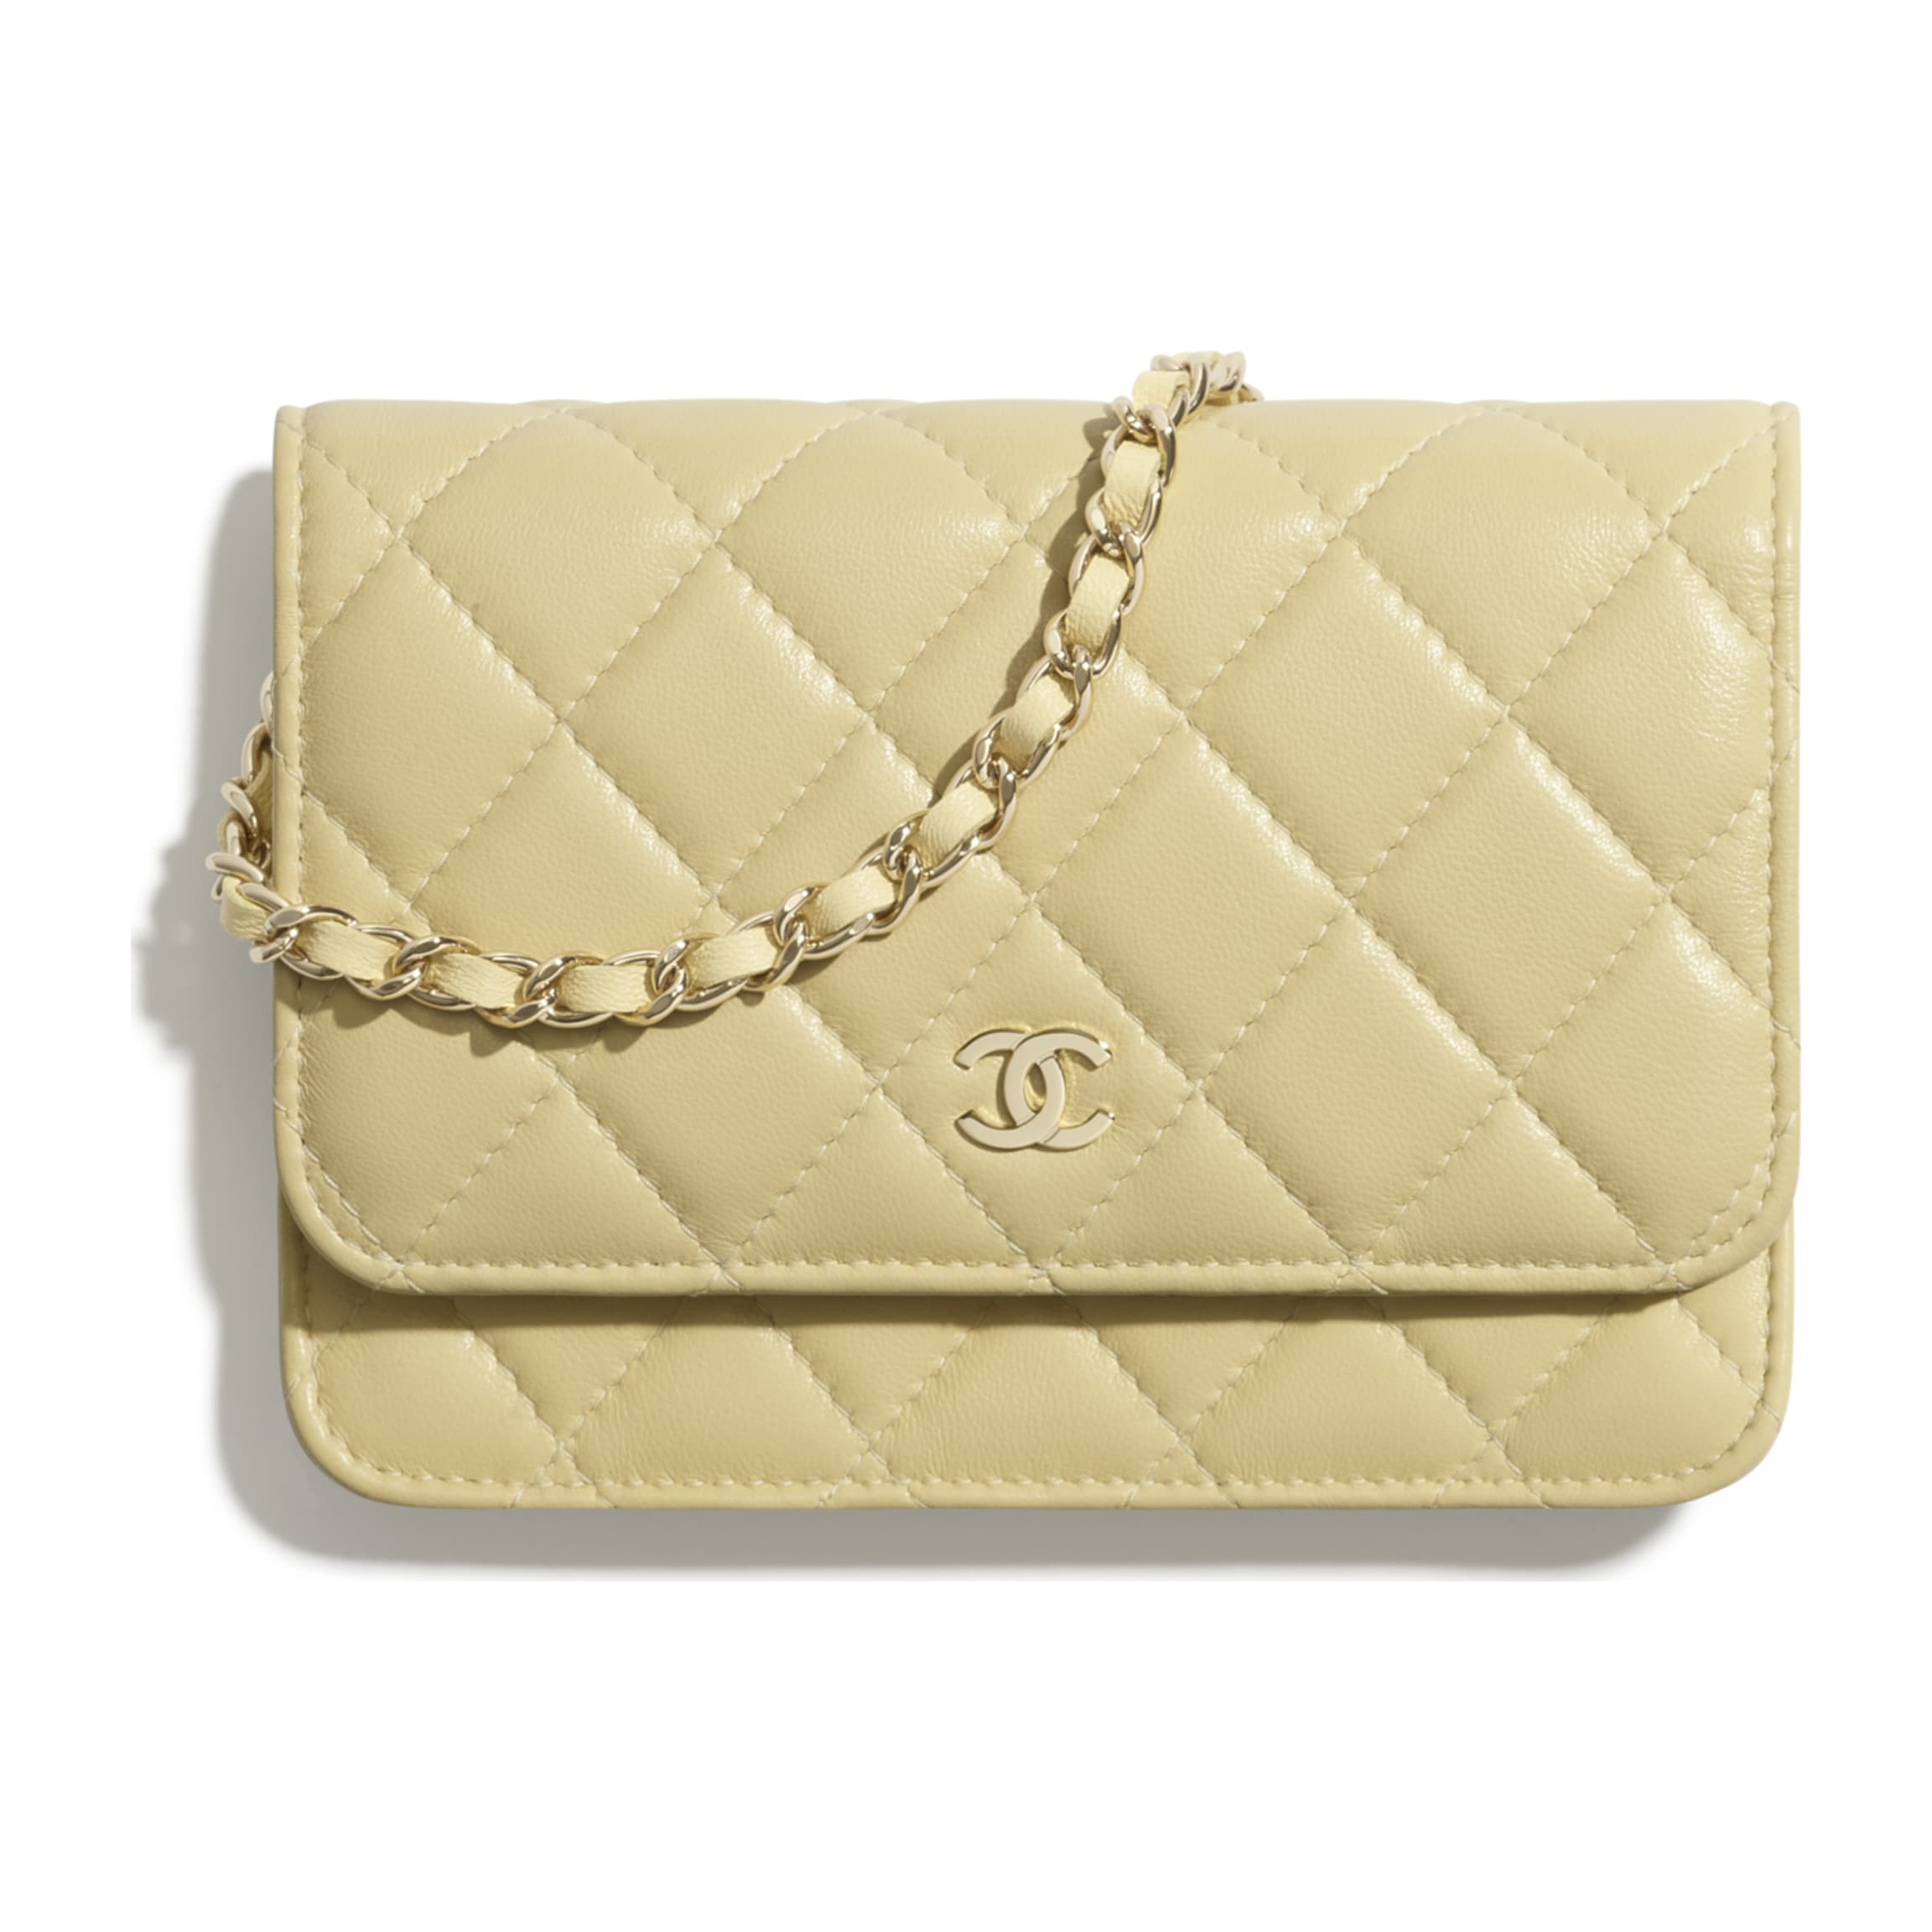 How Much Is Chanel? Chanel Price Guide how much is chanel woc